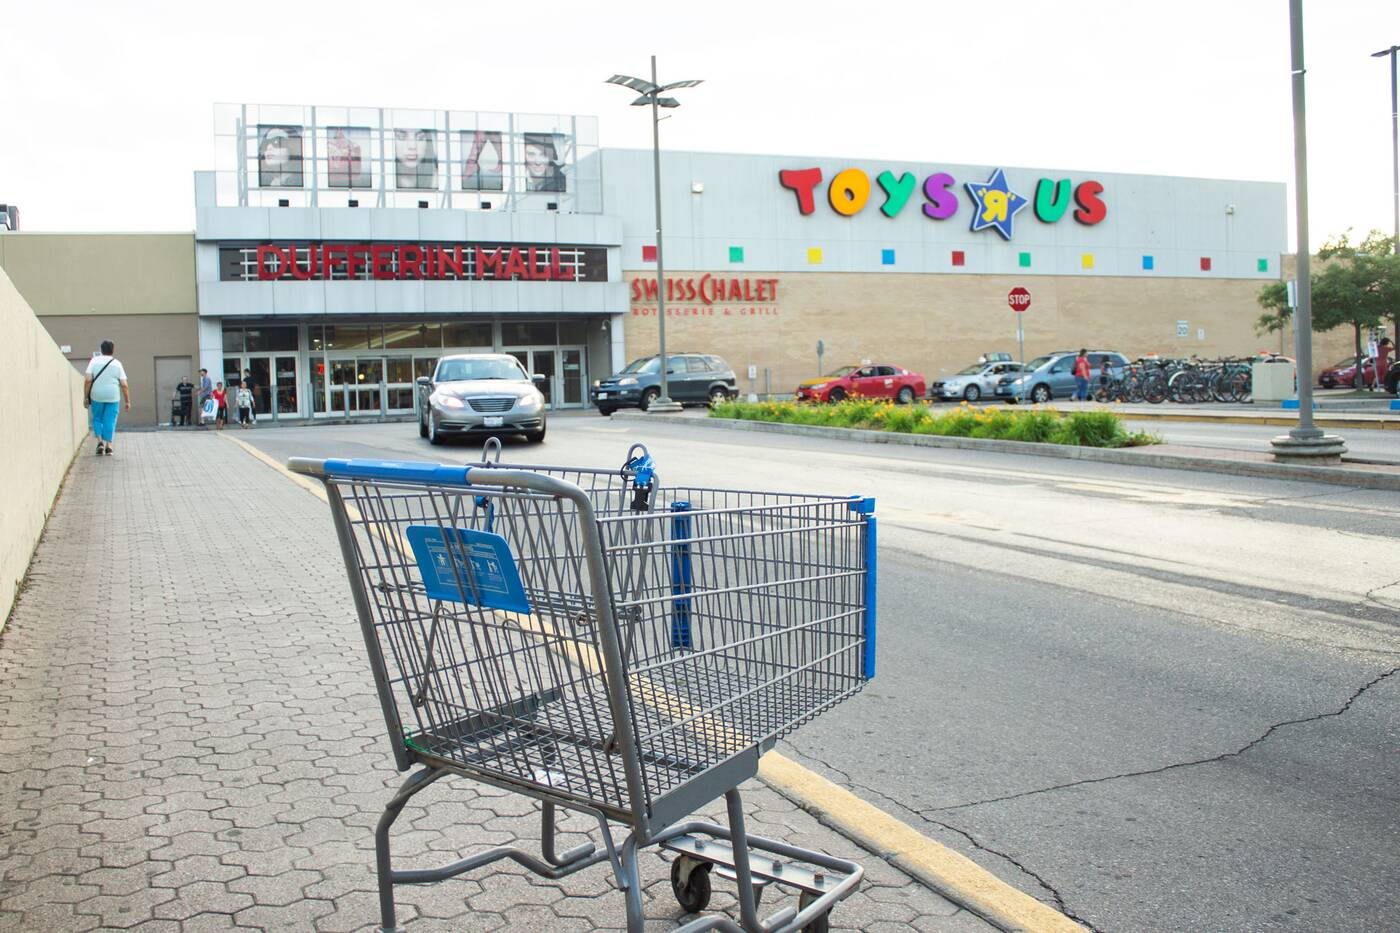 toys r us dufferin mall